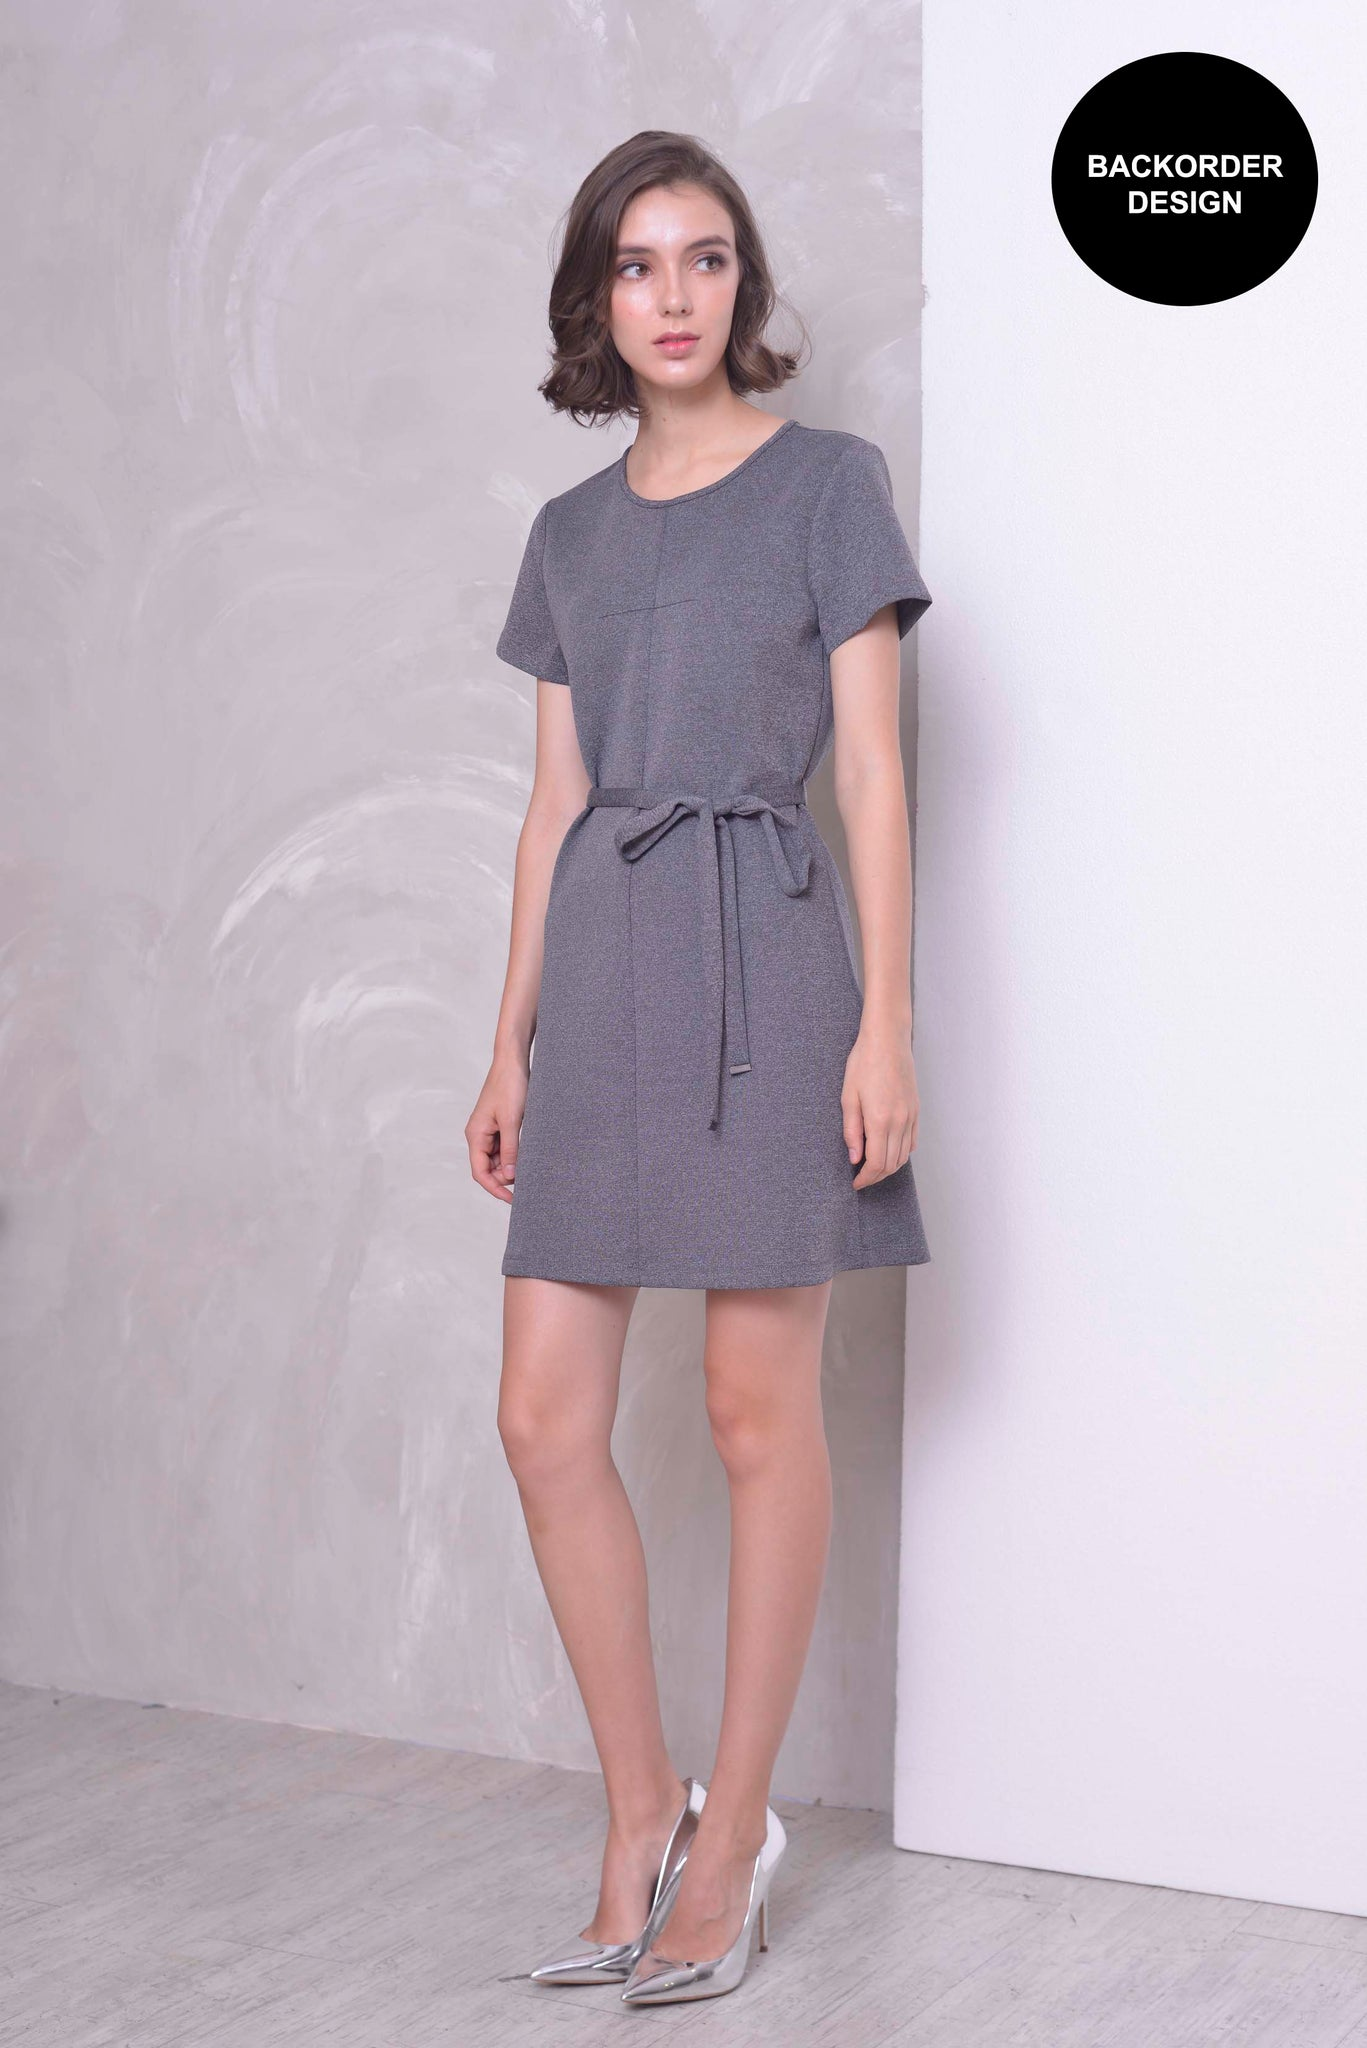 CASUAL-Klara Dress in DK.GREY